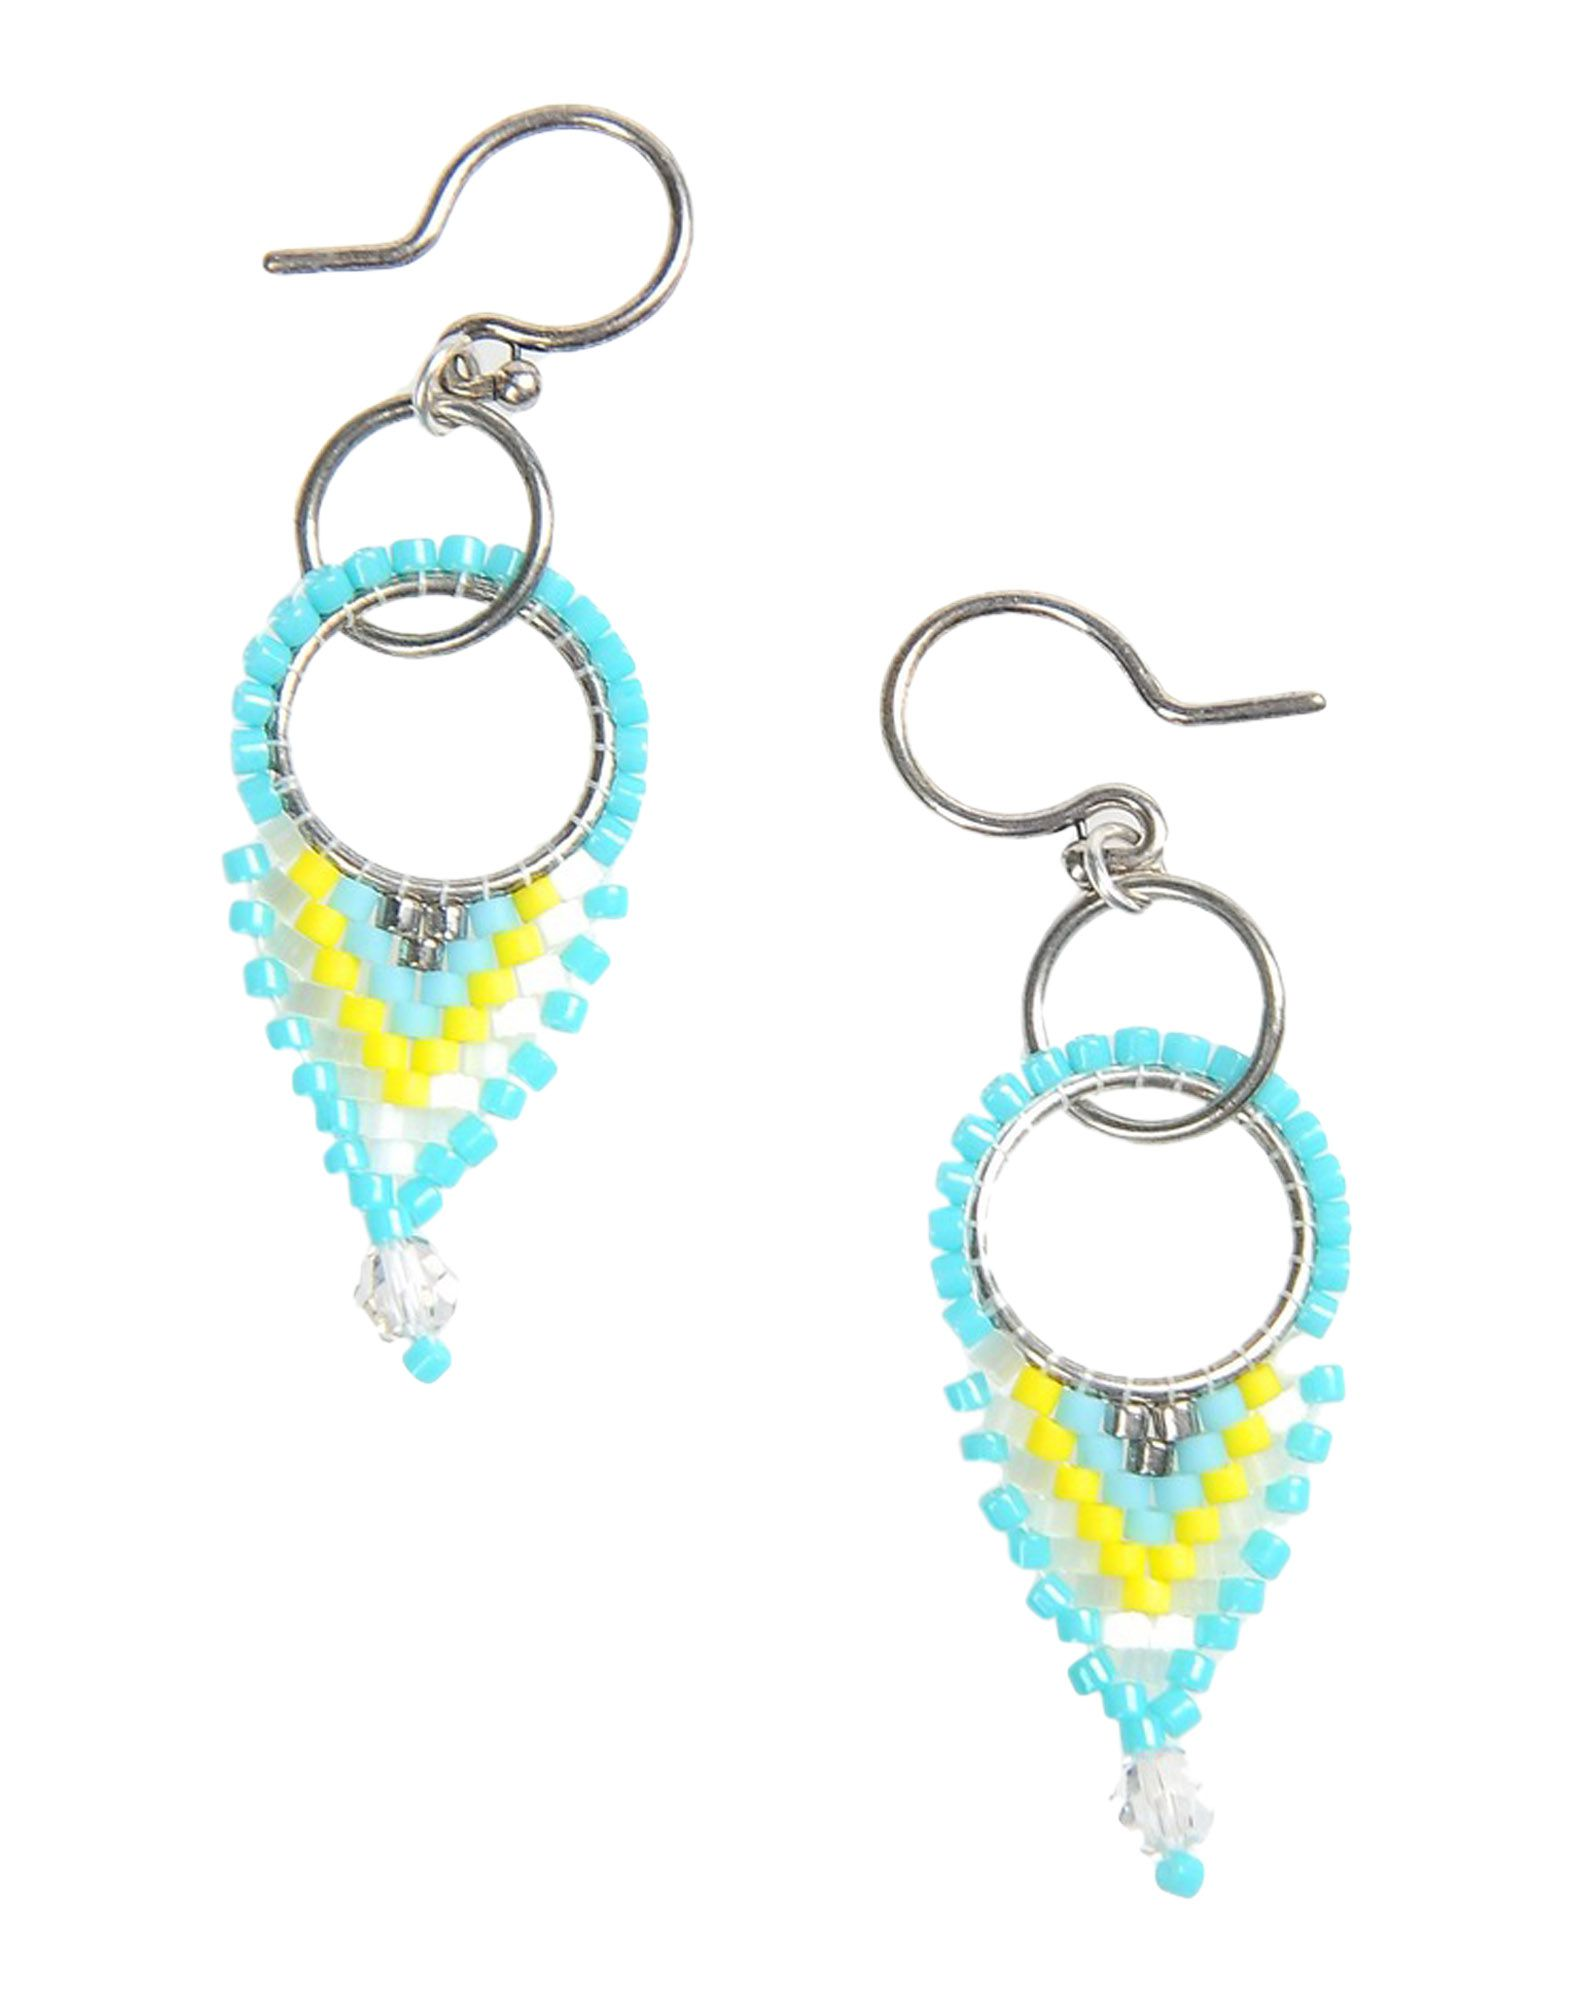 DETTAGLI JEWELRY - Earrings su YOOX.COM